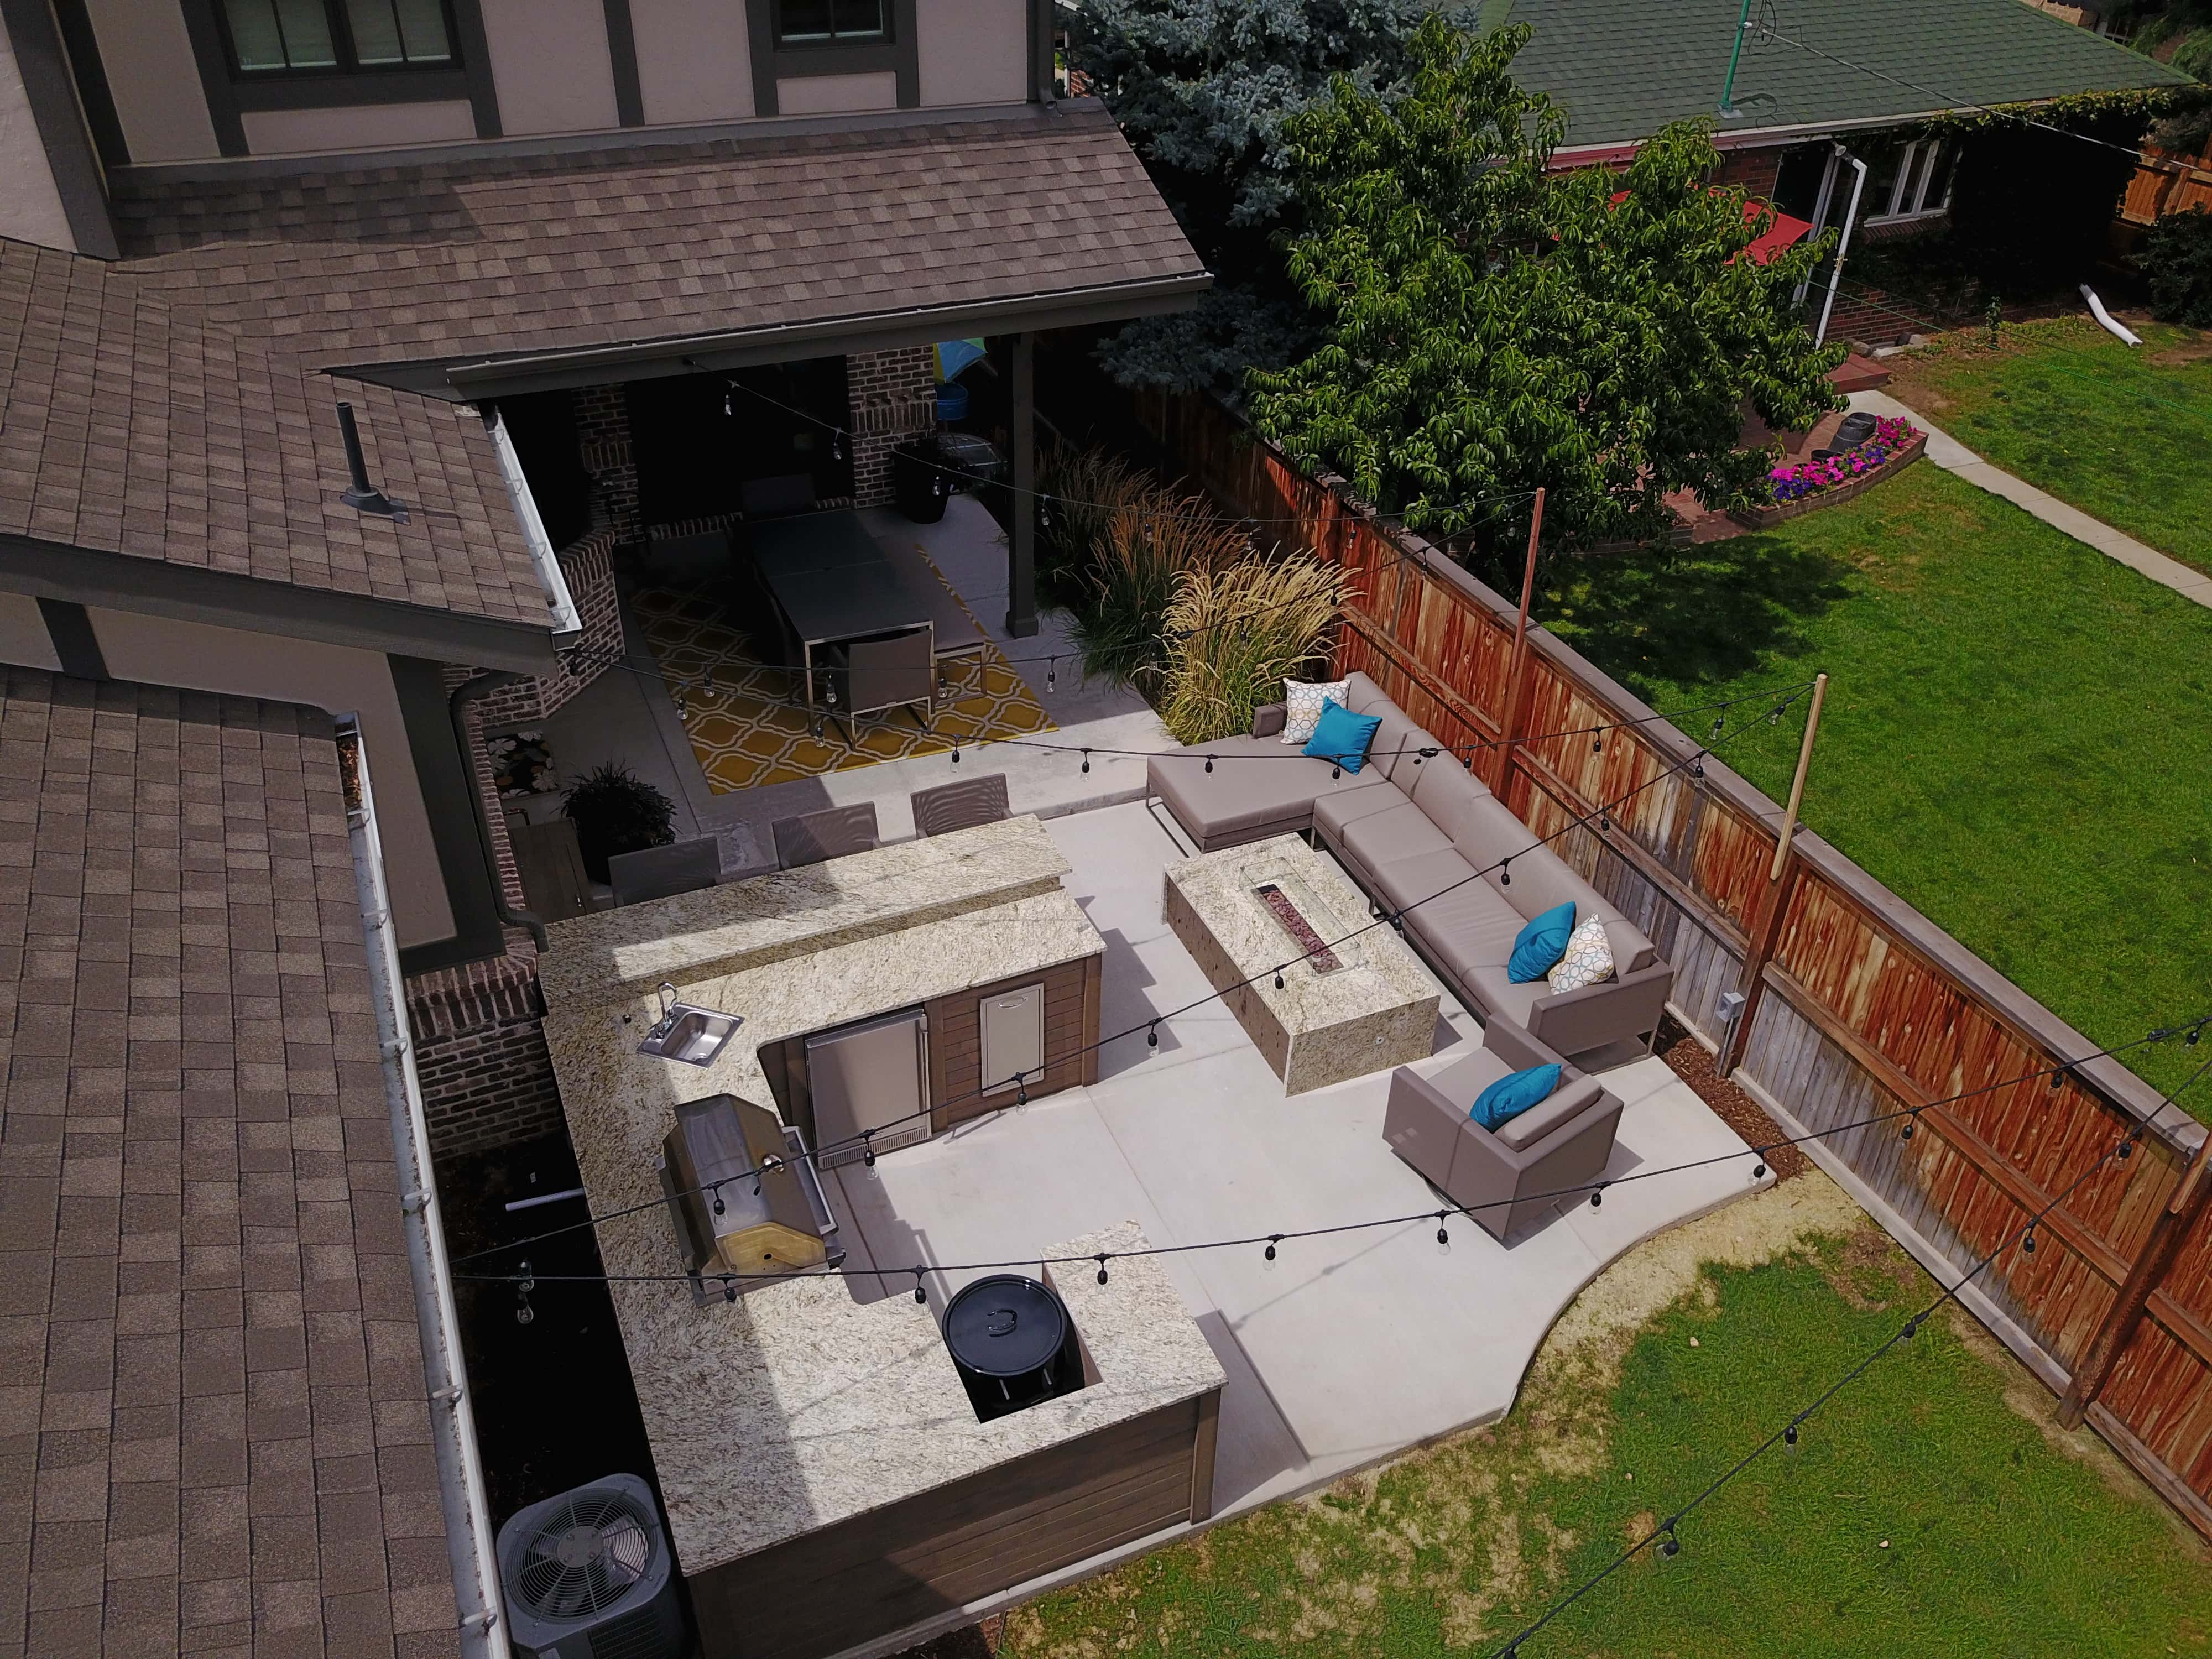 Patio Outdoor Kitchen Amp Fire Pit Denver Roof Decks Pergolas And Outdoor Living Spaces